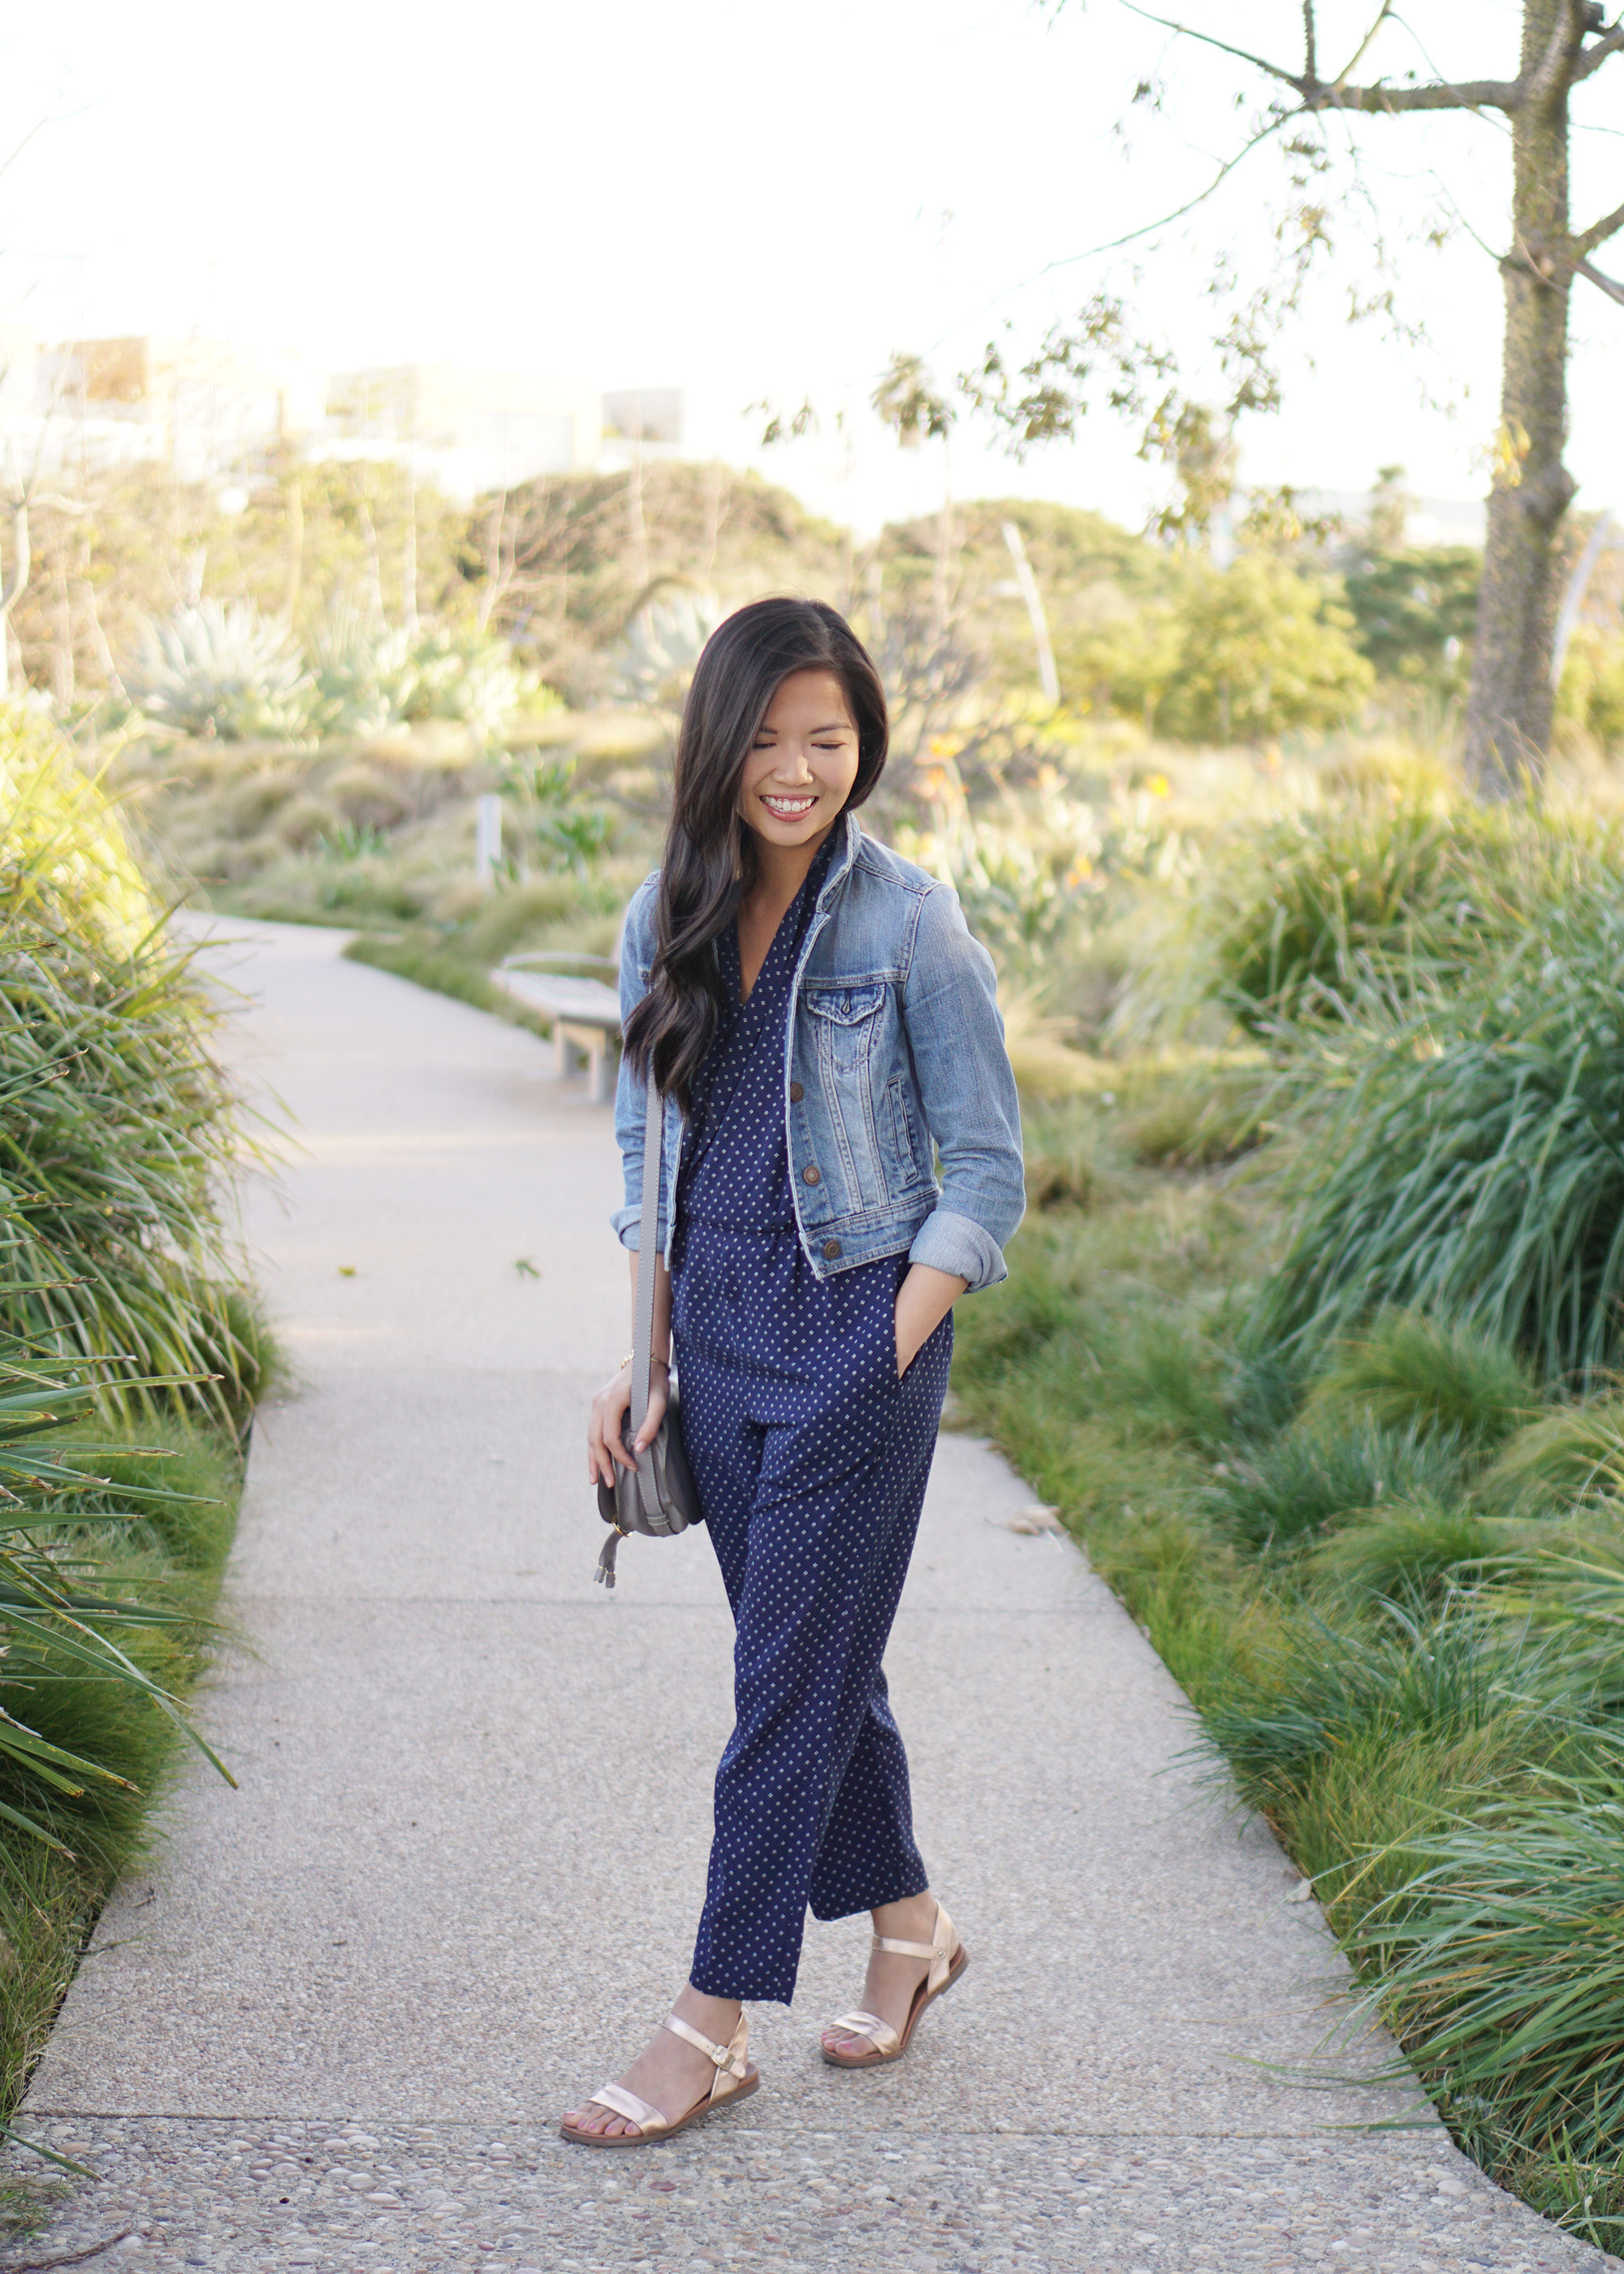 Spring Outfit / How to Wear a Jumpsuit if You're Short